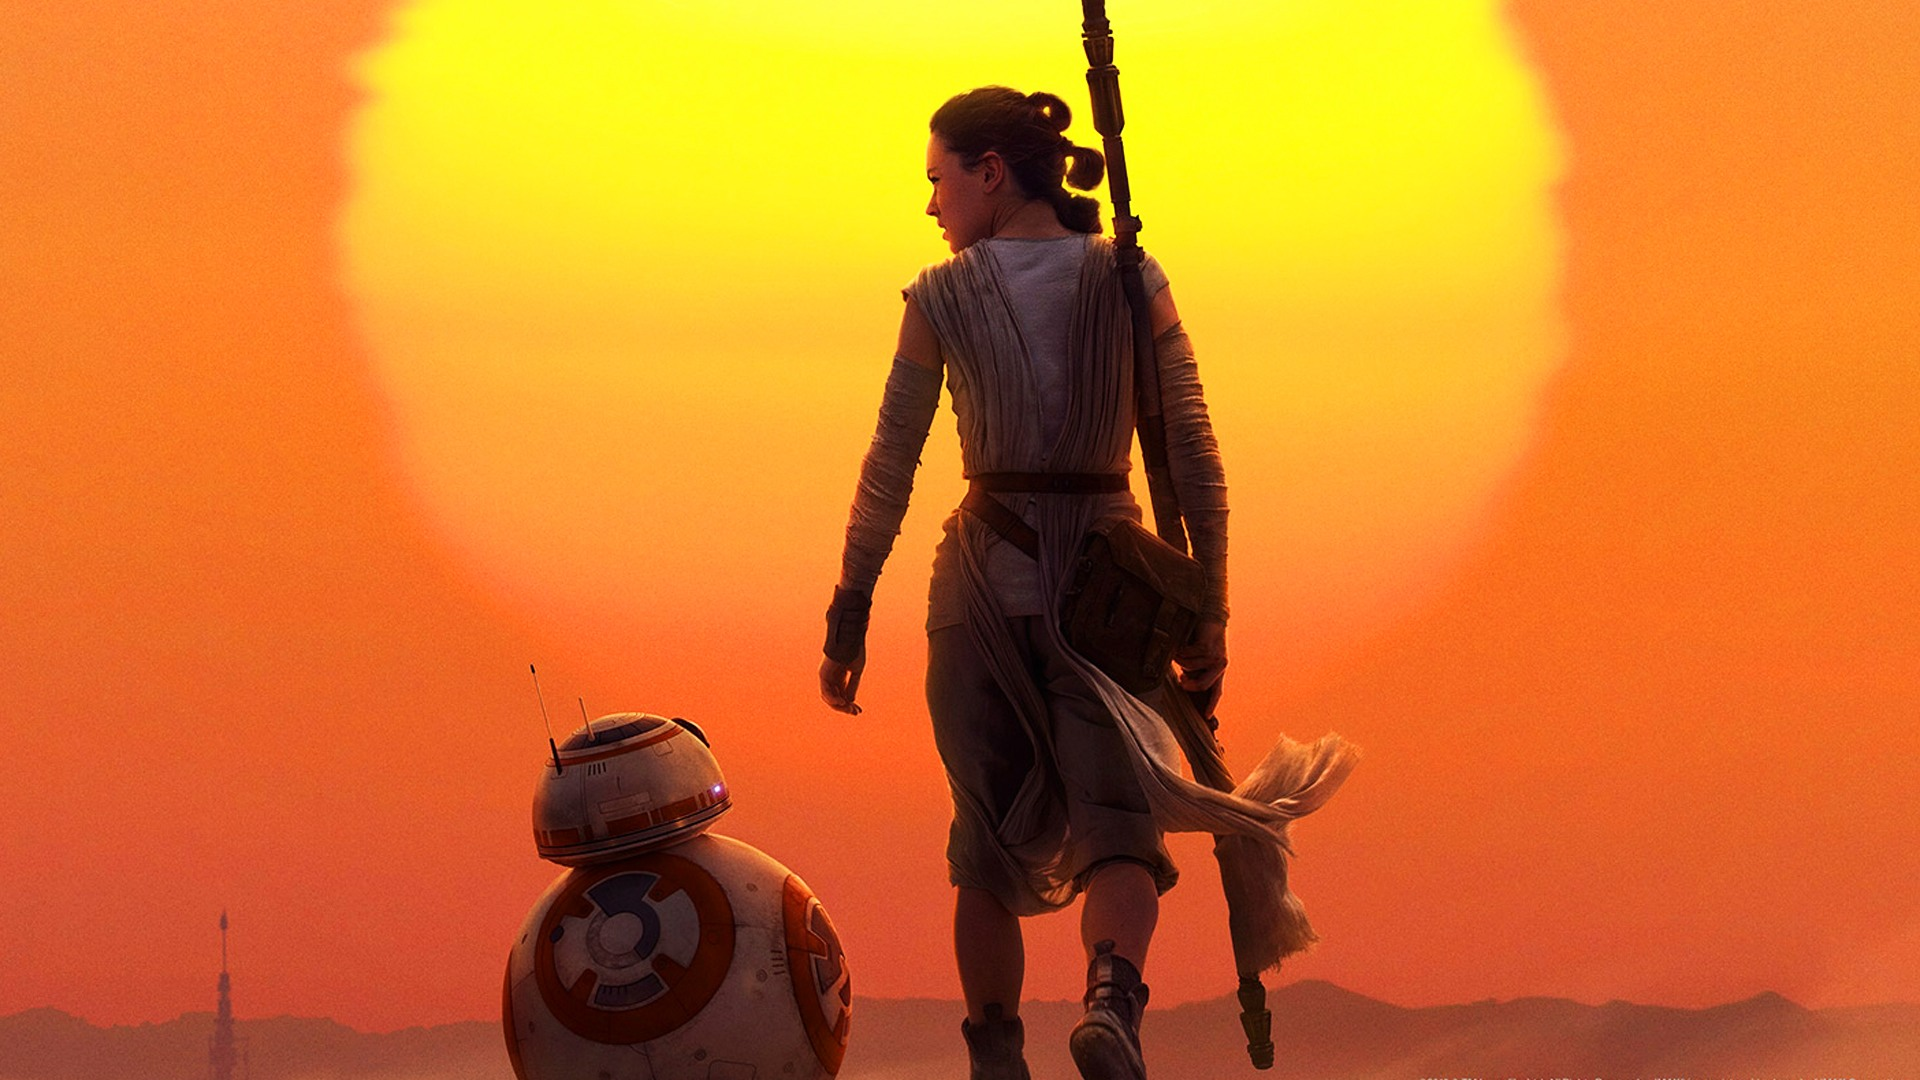 Filmtipp - star wars the force awakens - Filmtipps.tv